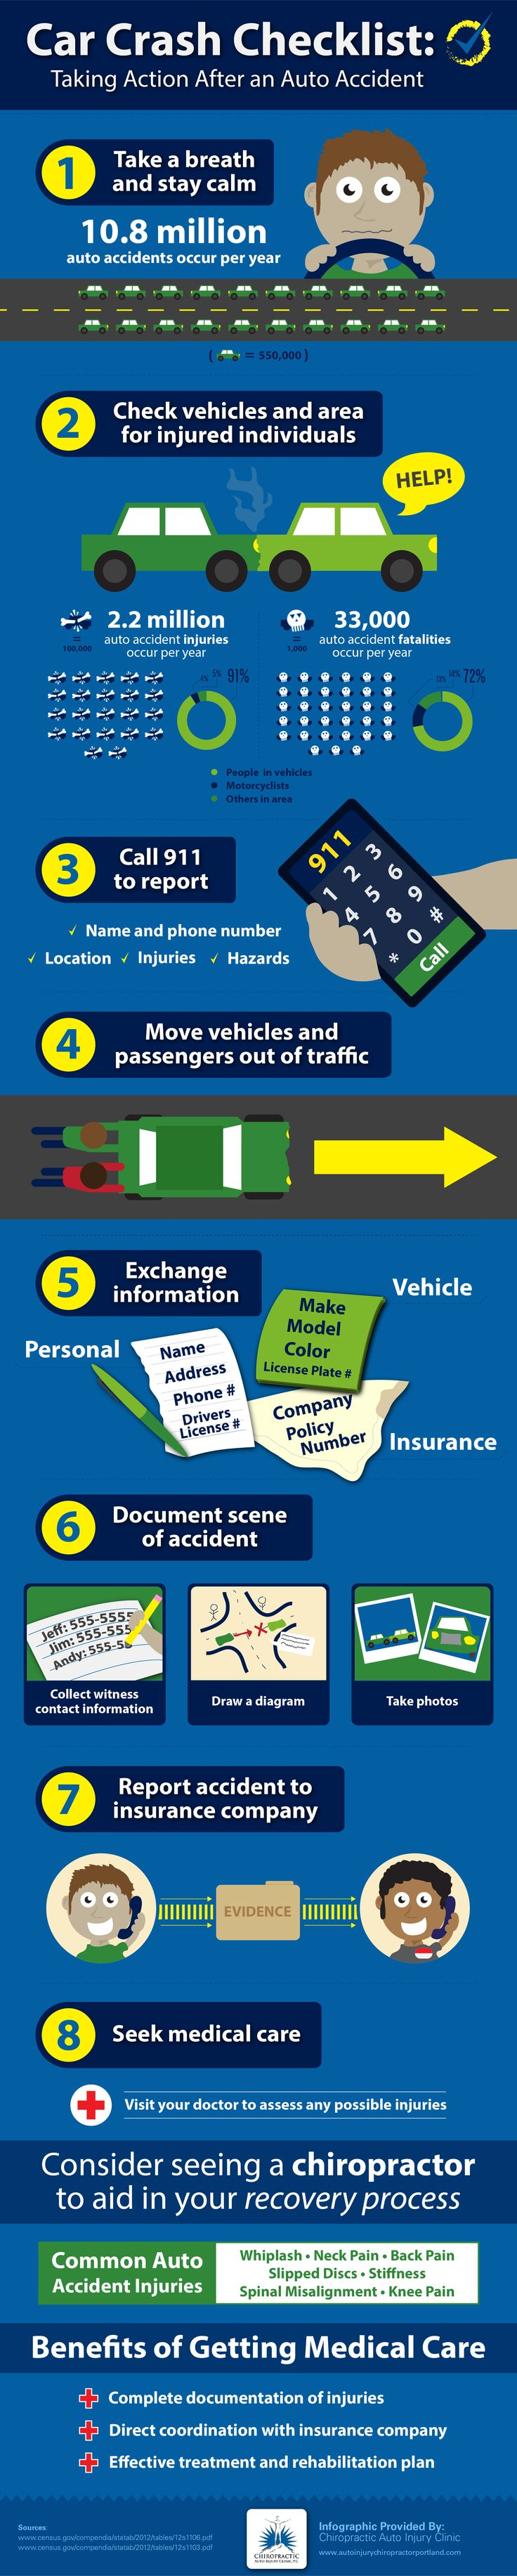 Car Crash Checklist: Taking Action After an Auto Accident